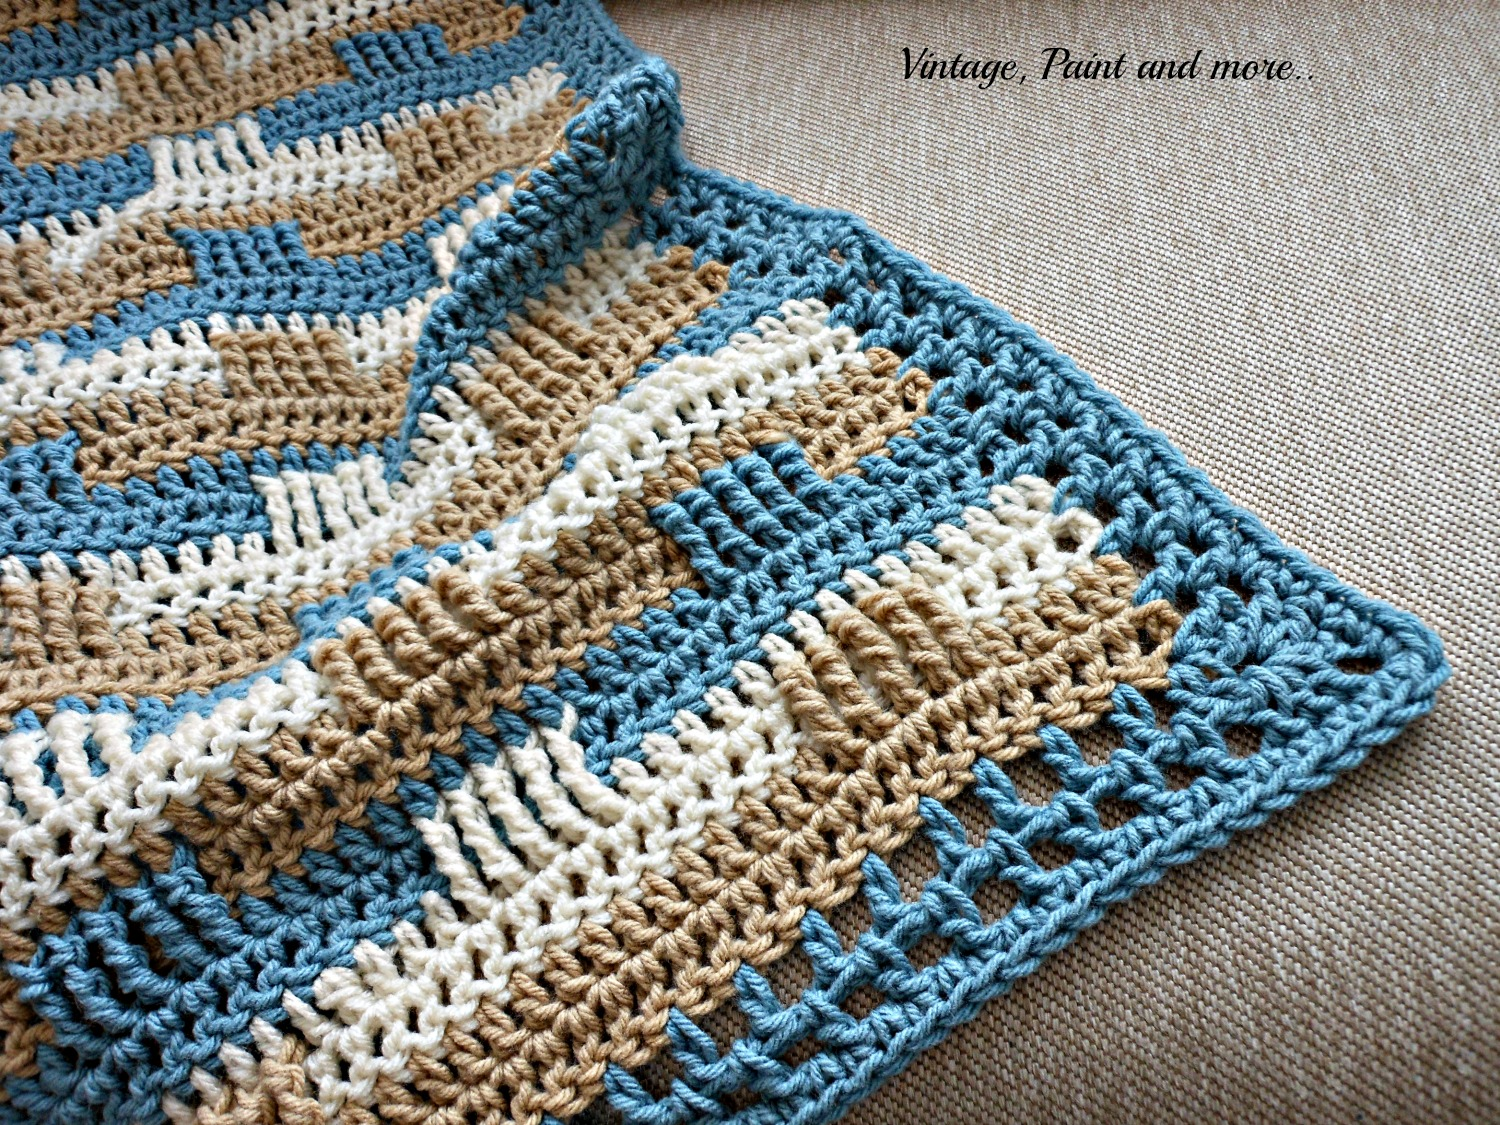 Crocheting An Afghan : Vintage, Paint and more... an afghan crocheted in a basket weave ...